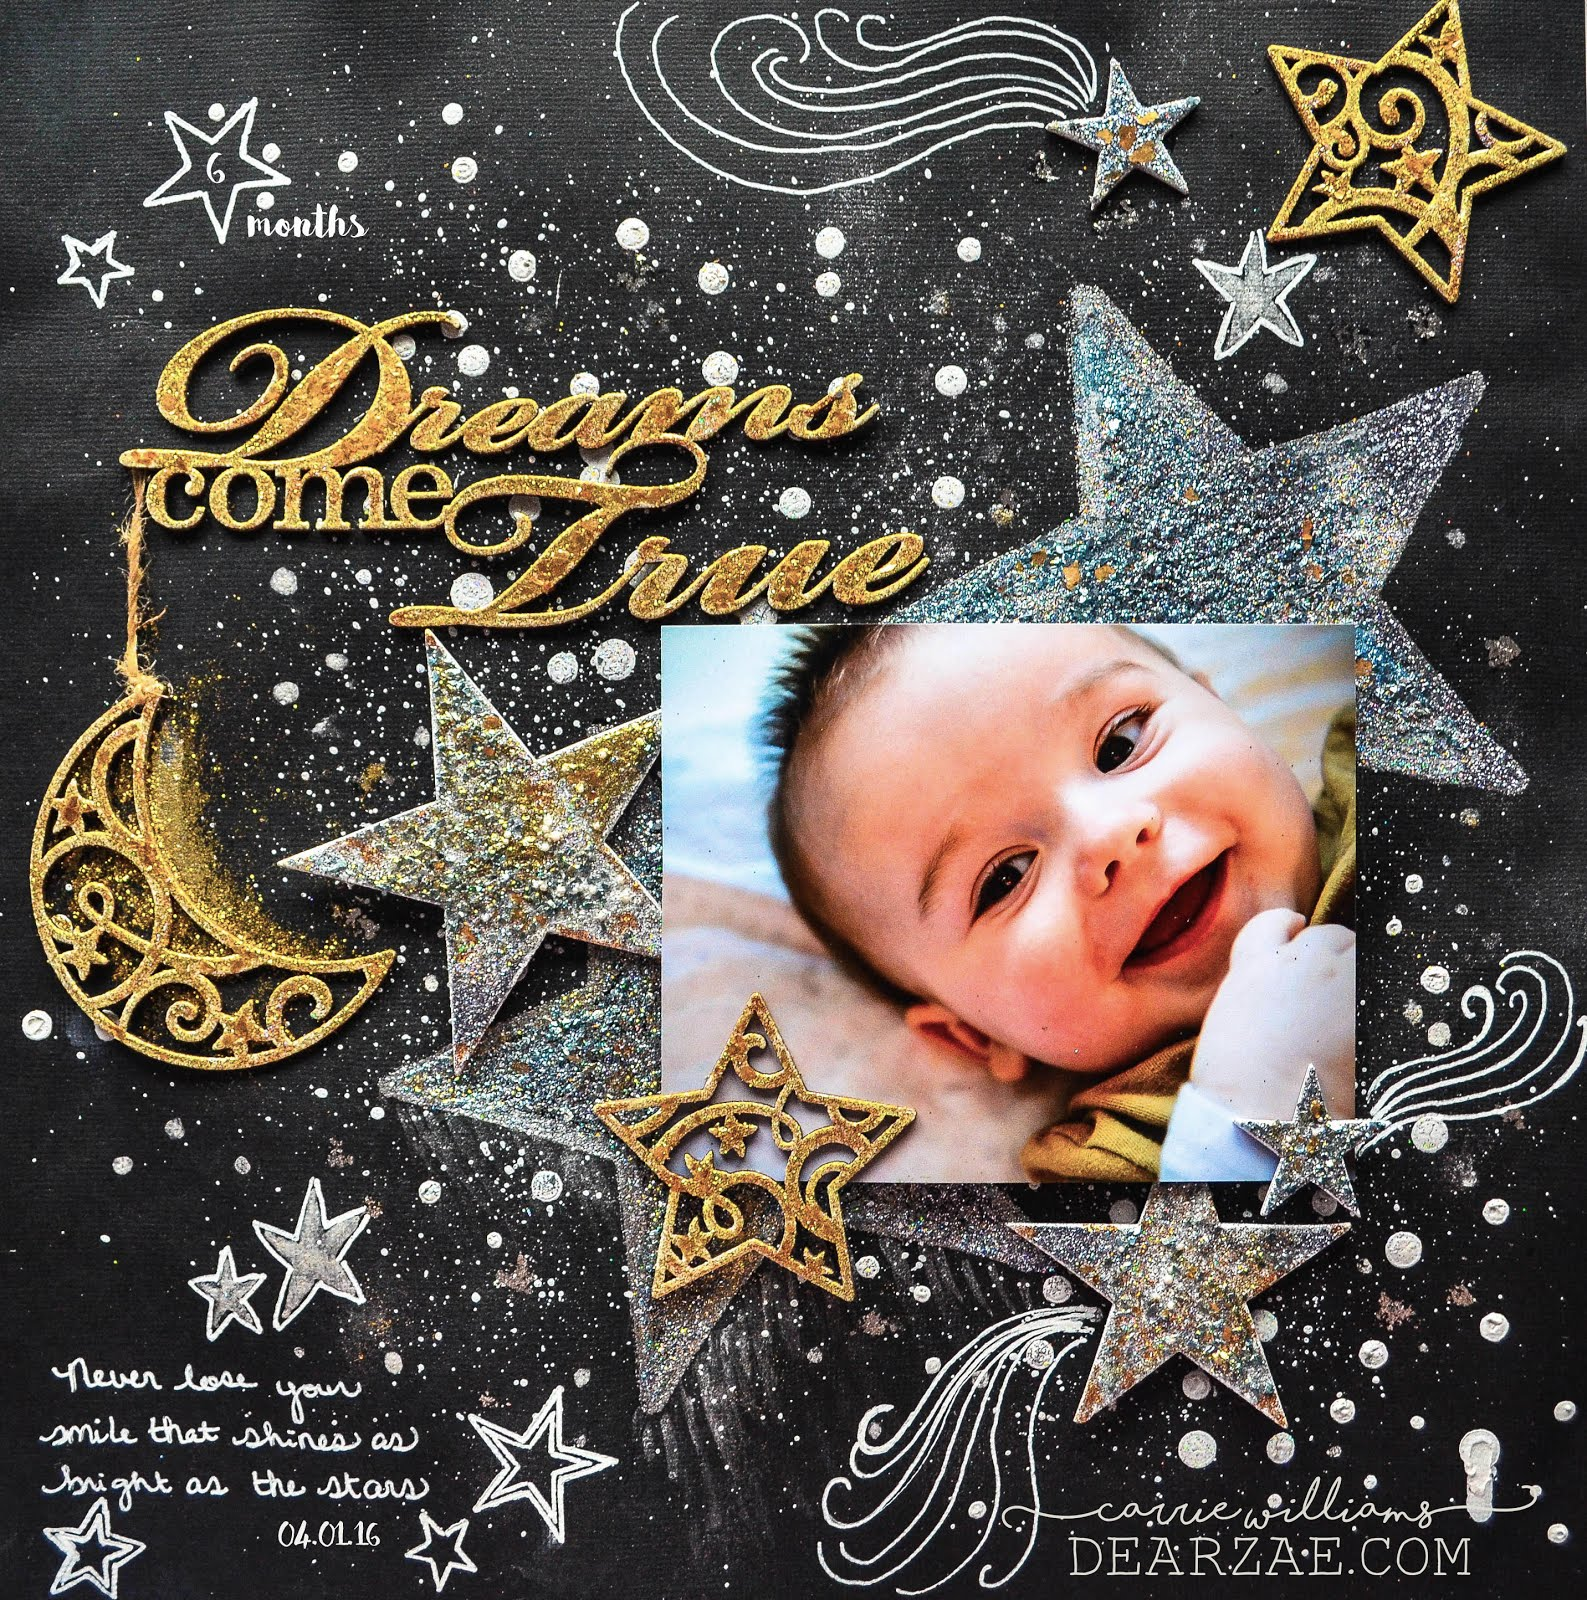 Scrapbook layout challenge - black cardstock background with stars, mixed media with heat embossed chipboard, mica flakes, glitter, blue fern studios chipboard, signo pen doodling, paint splatters, in gold, silver, black, and white with moon and stars using encrusted jewel technique from stampendous